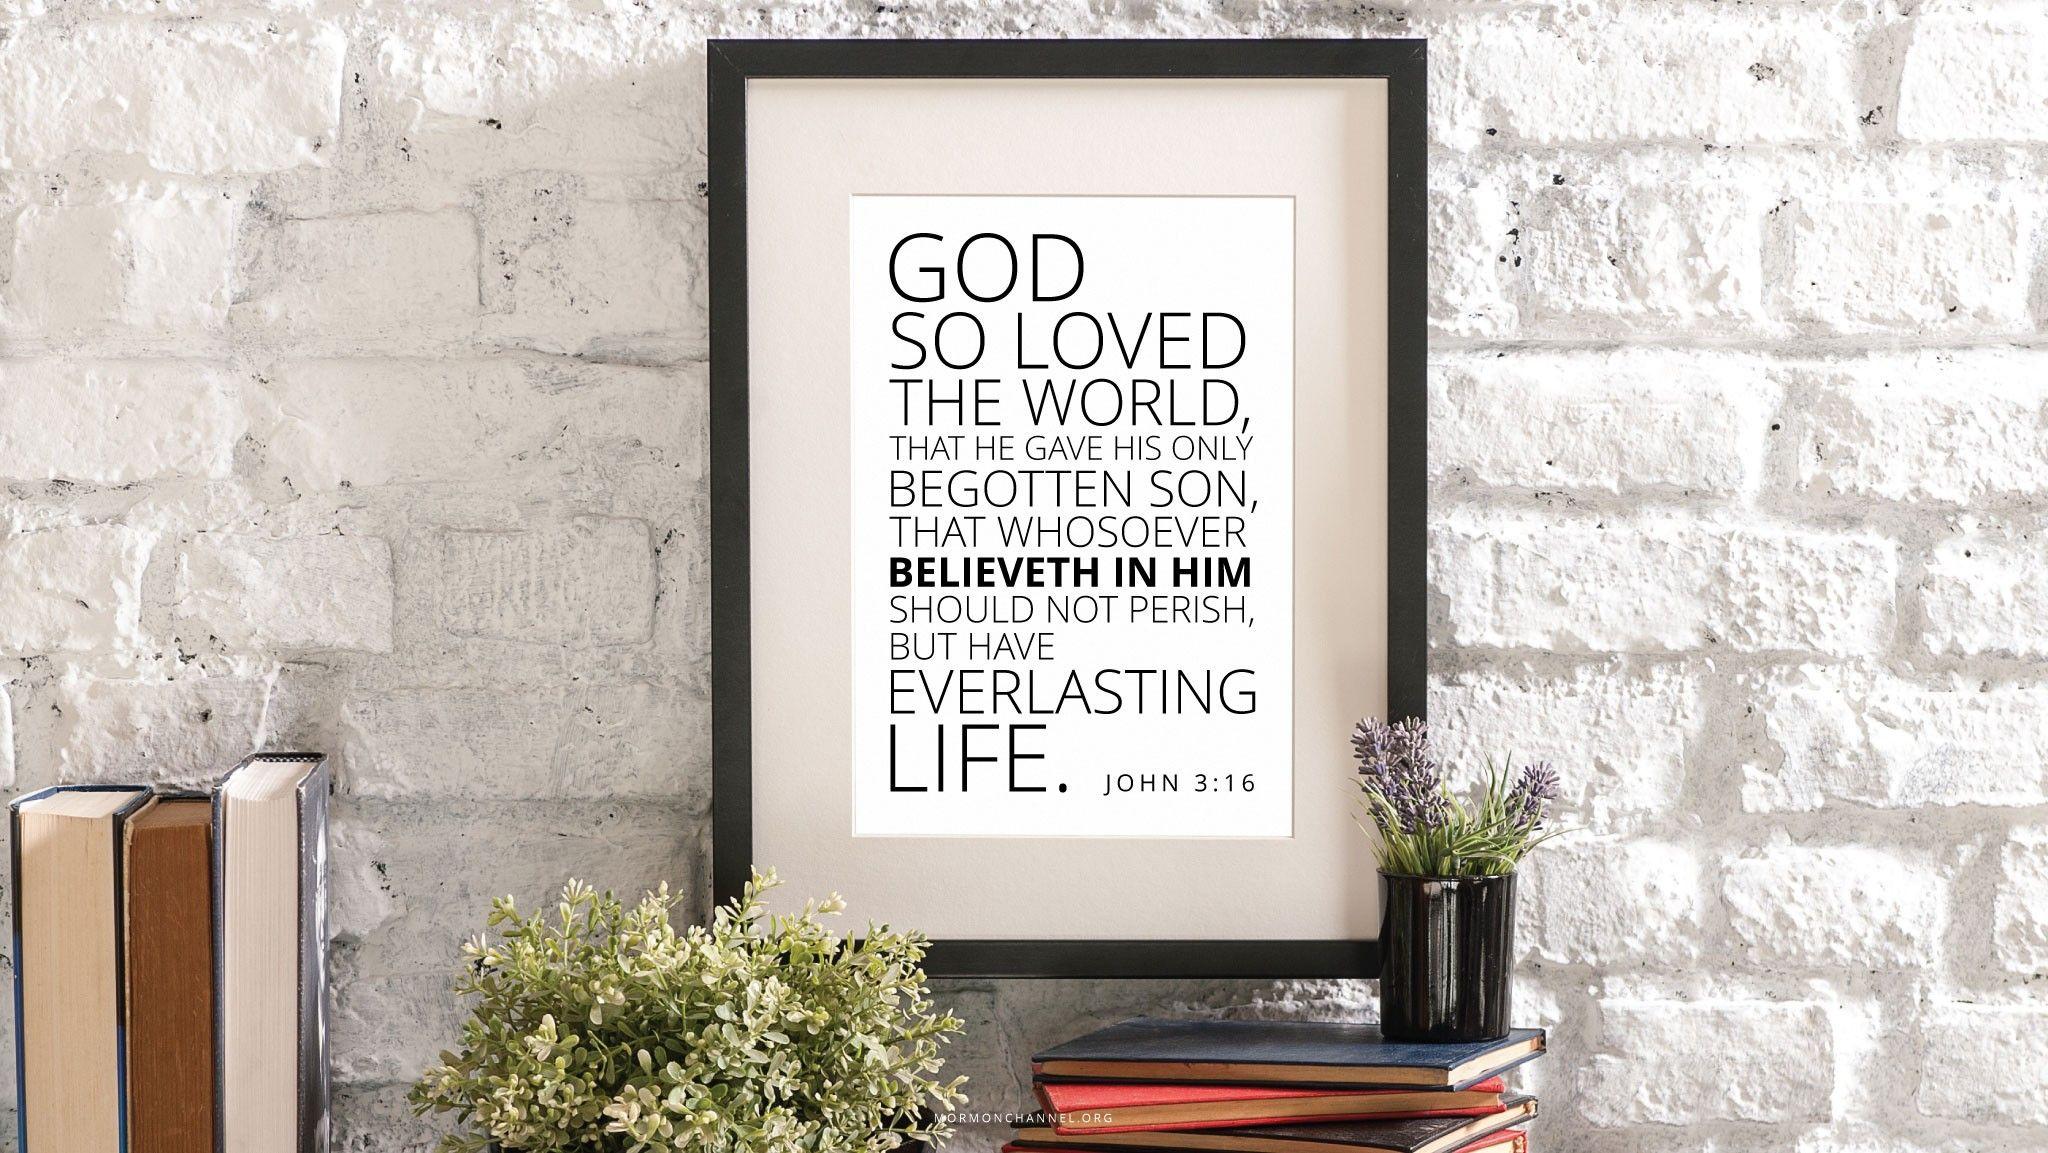 """""""God so loved the world, that he gave his only begotten Son, that whosoever believeth in him should not perish, but have everlasting life.""""—John 3:16"""